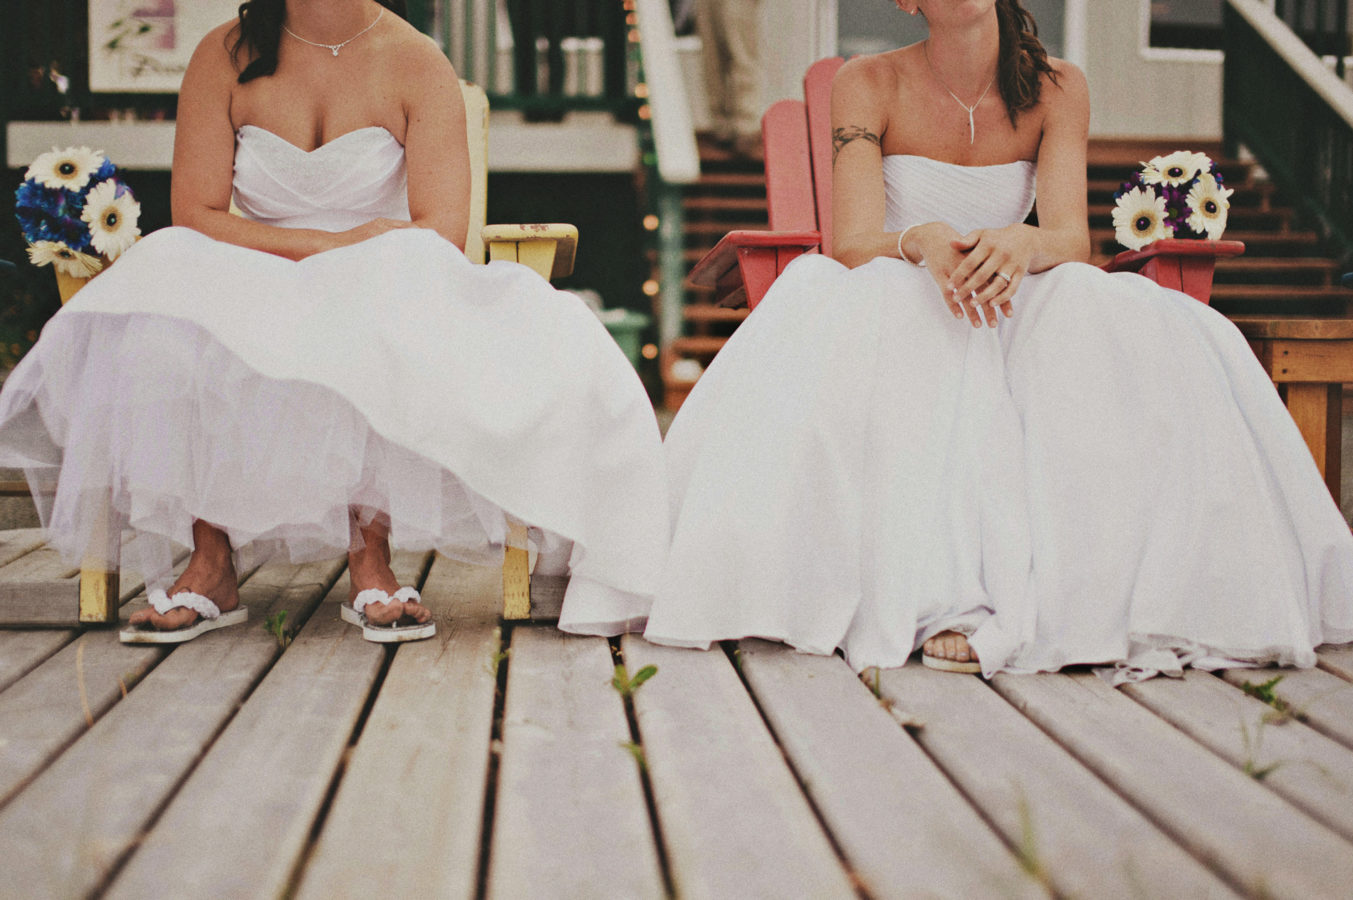 detail of two brides' dresses and shoes sitting on chairs on a deck